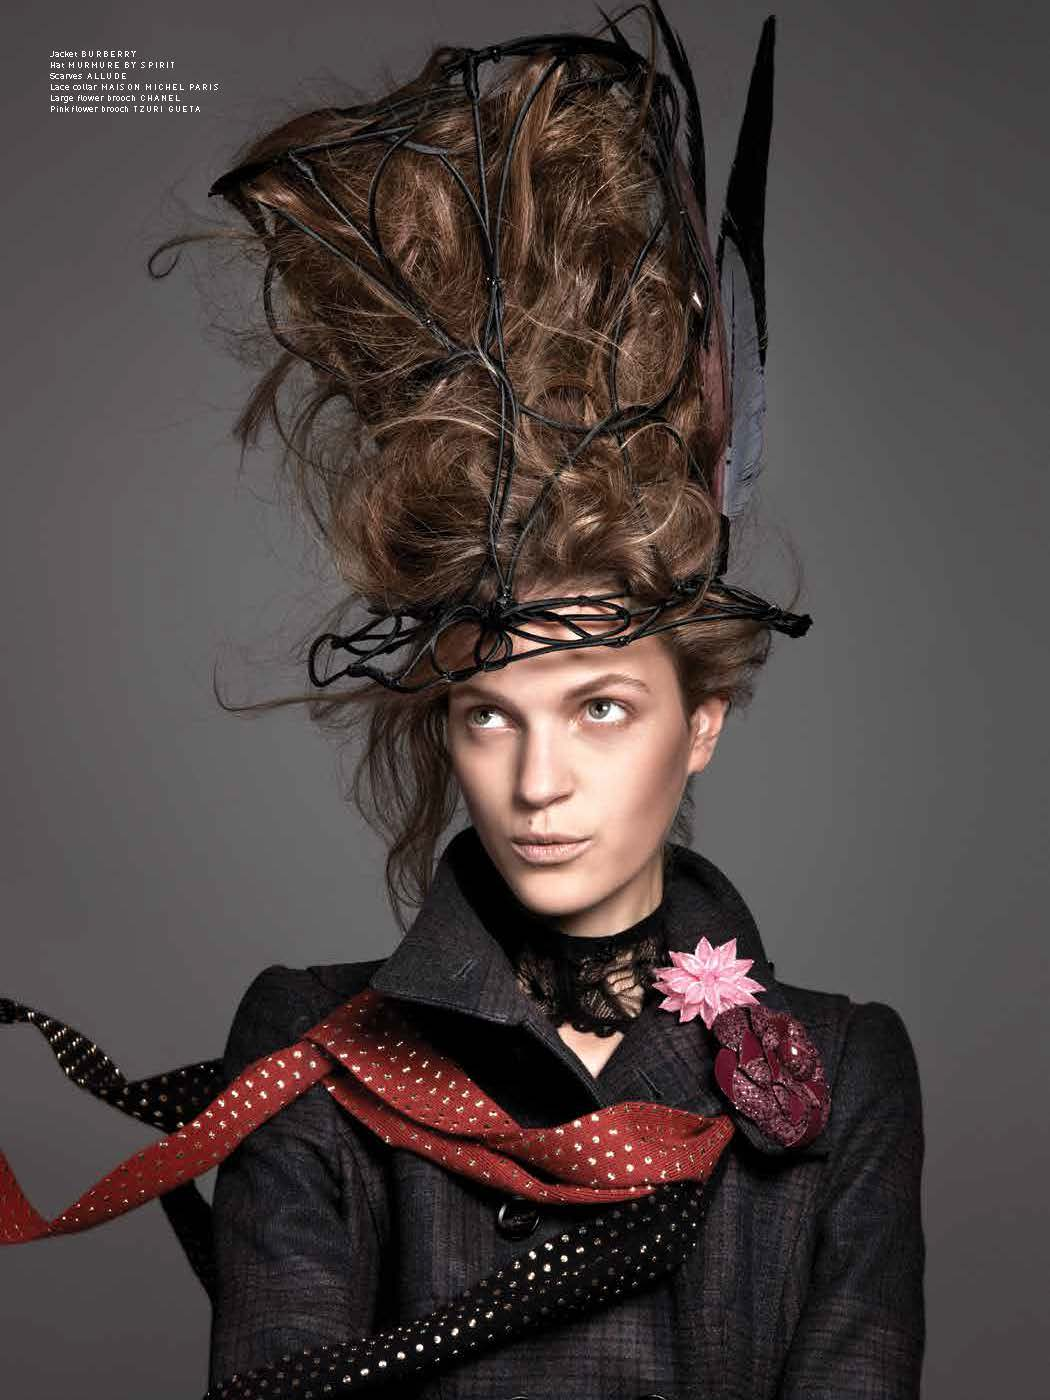 Magdalena Langrova Looks Mad as a Hatter for Pulp Magazine No. 6 by Ishi